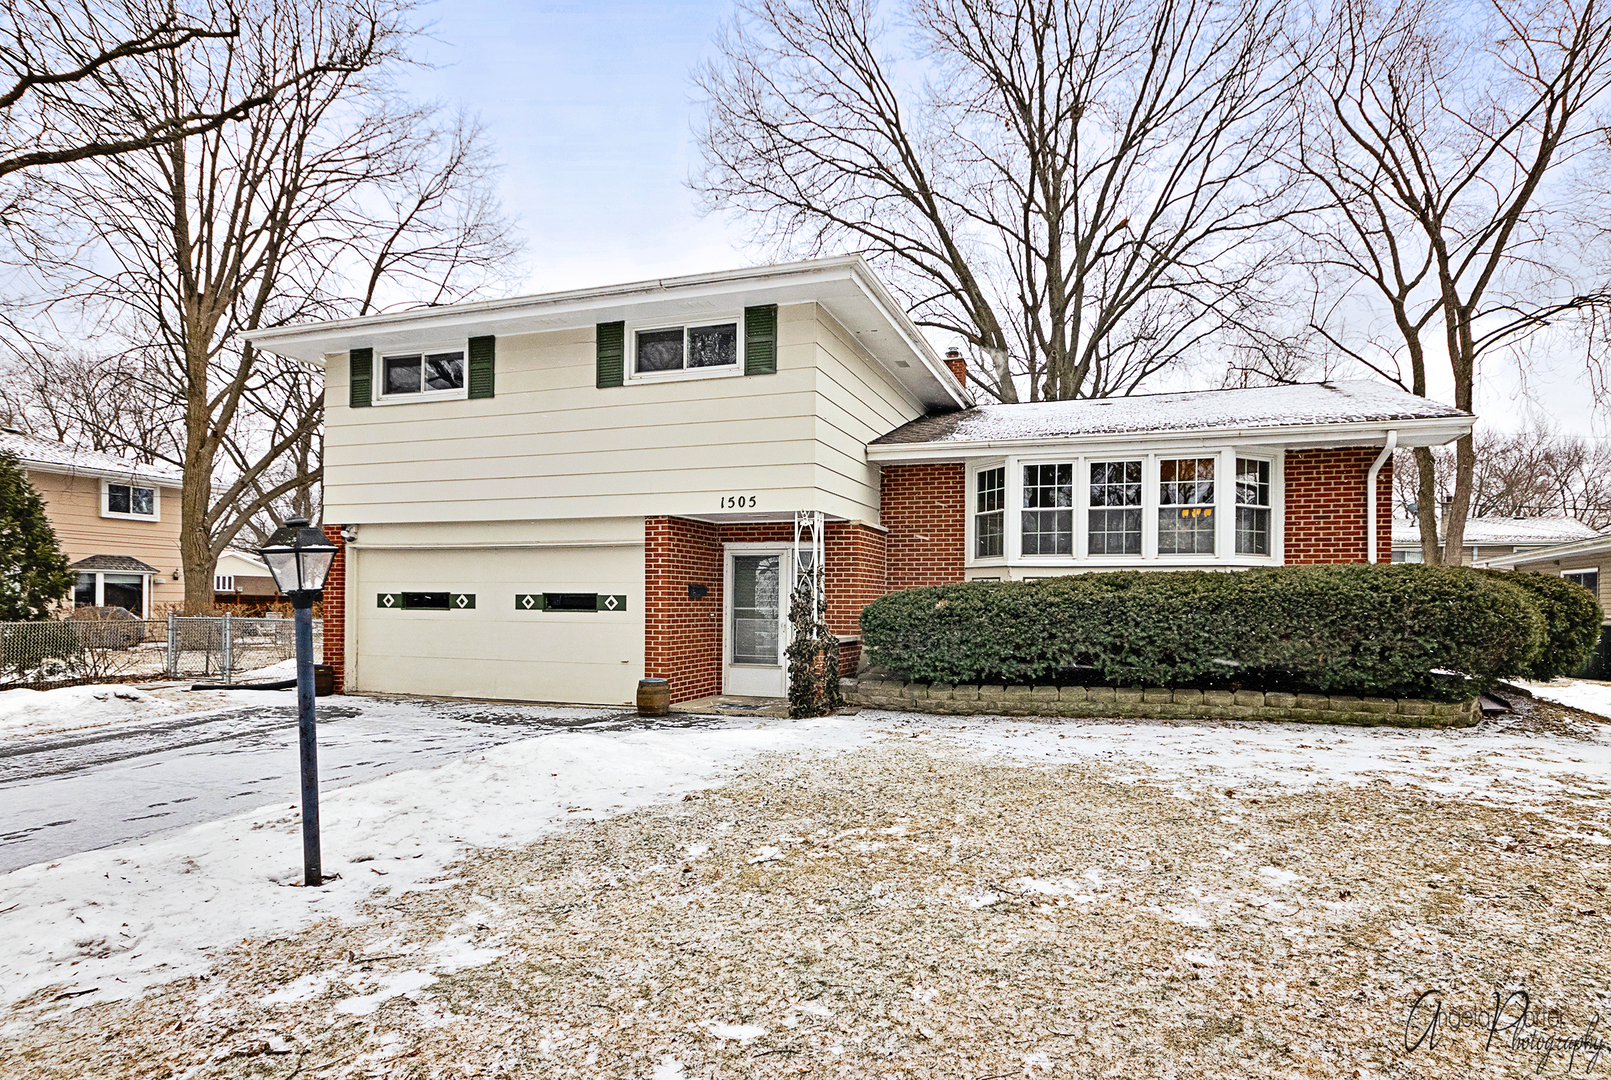 1505 Cedar ,Mount Prospect, Illinois 60056